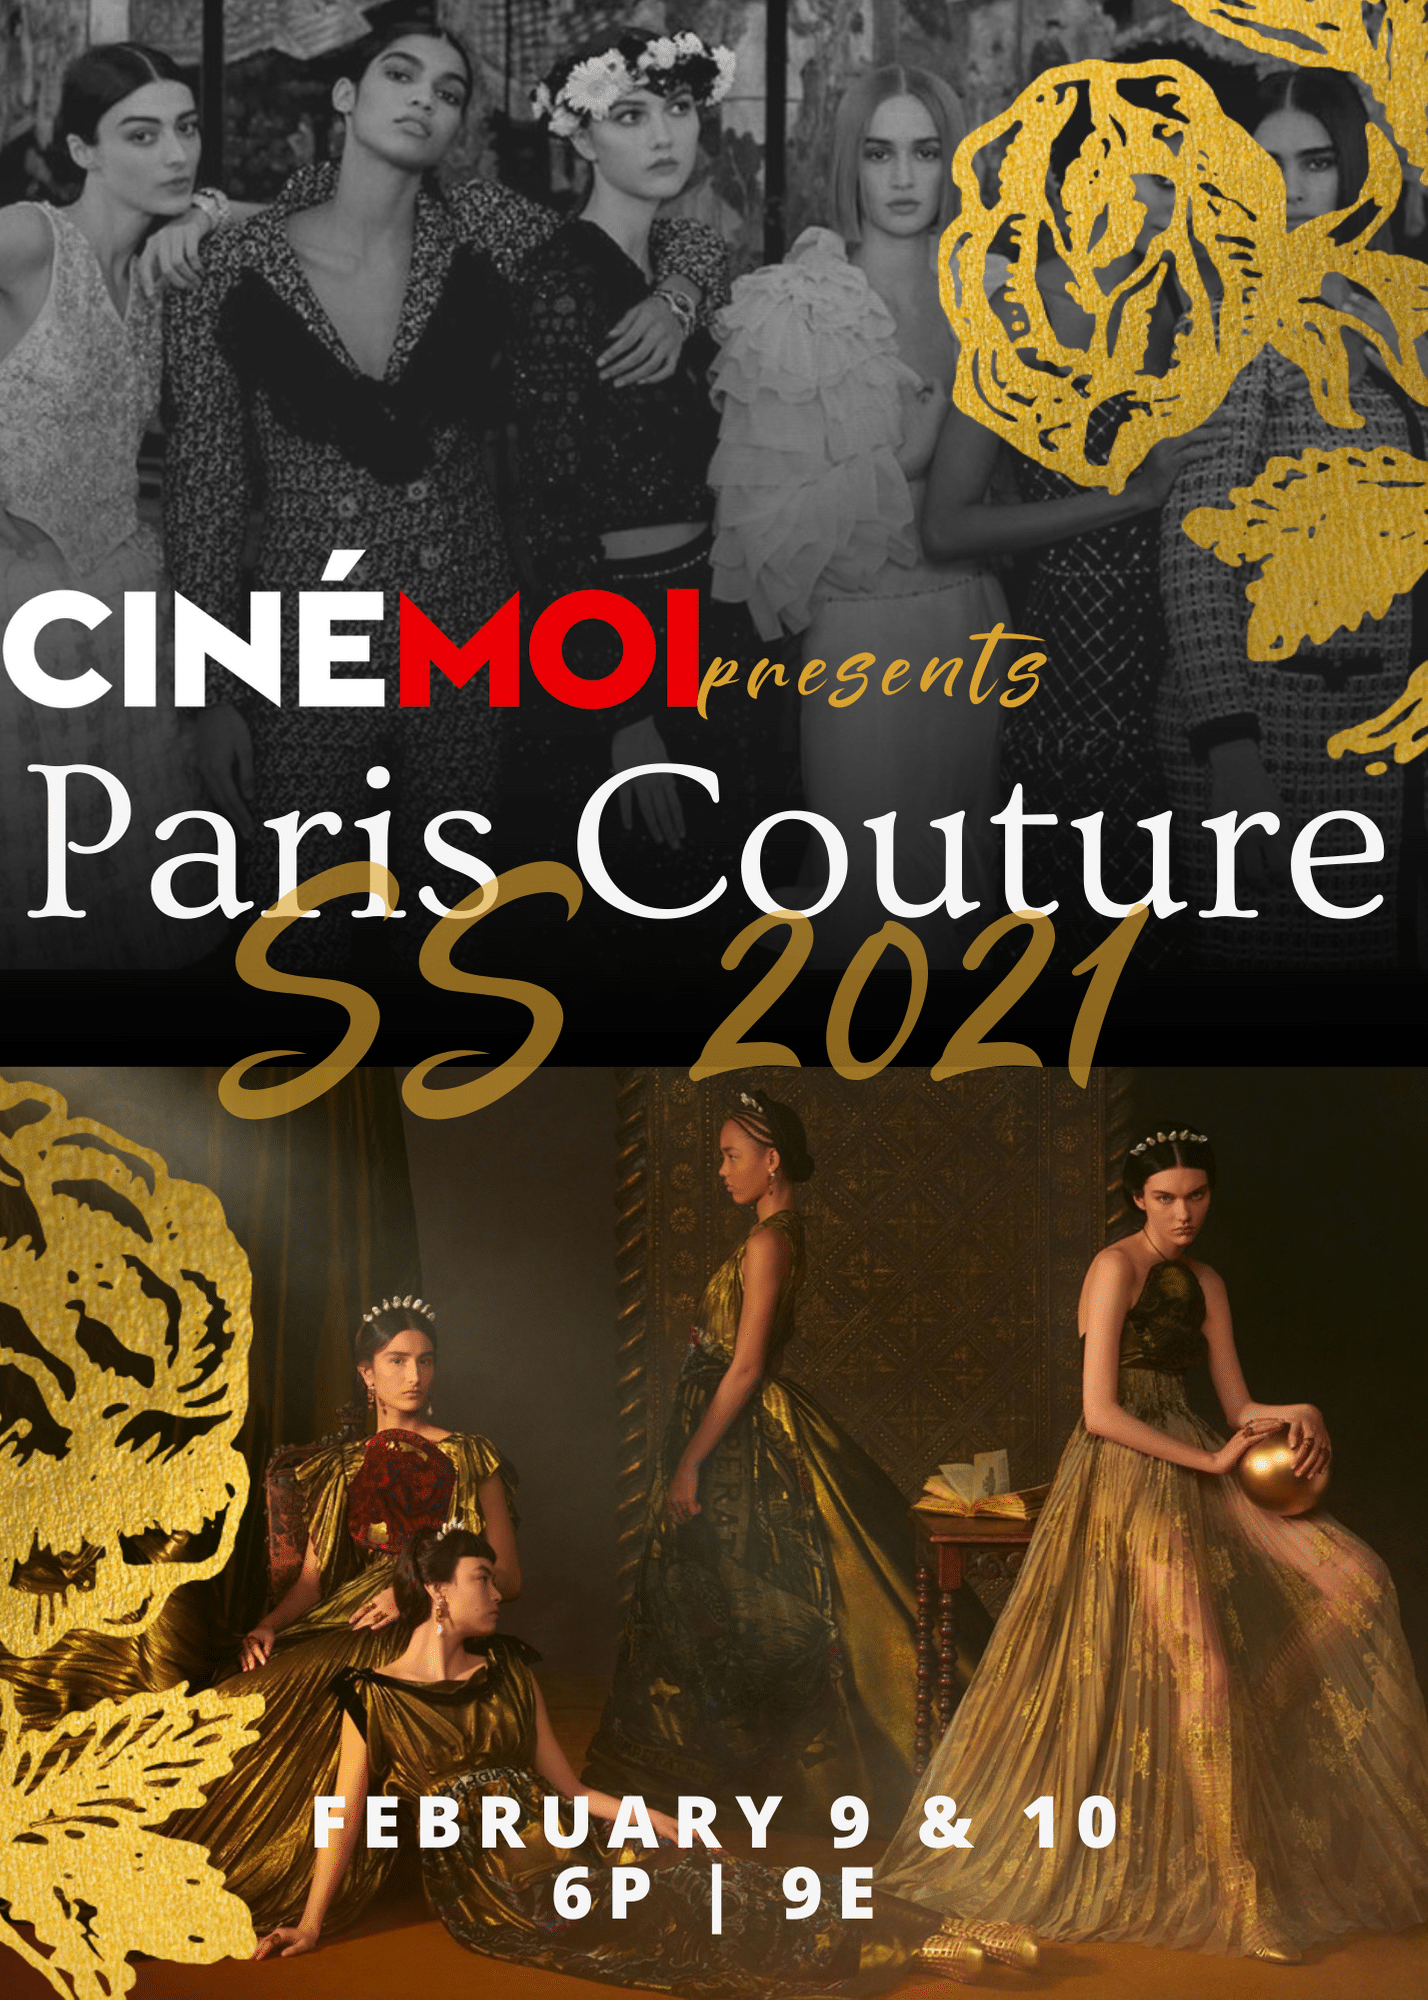 Cinémoi Presents: Paris Haute Couture Fashion Week SS 21 2